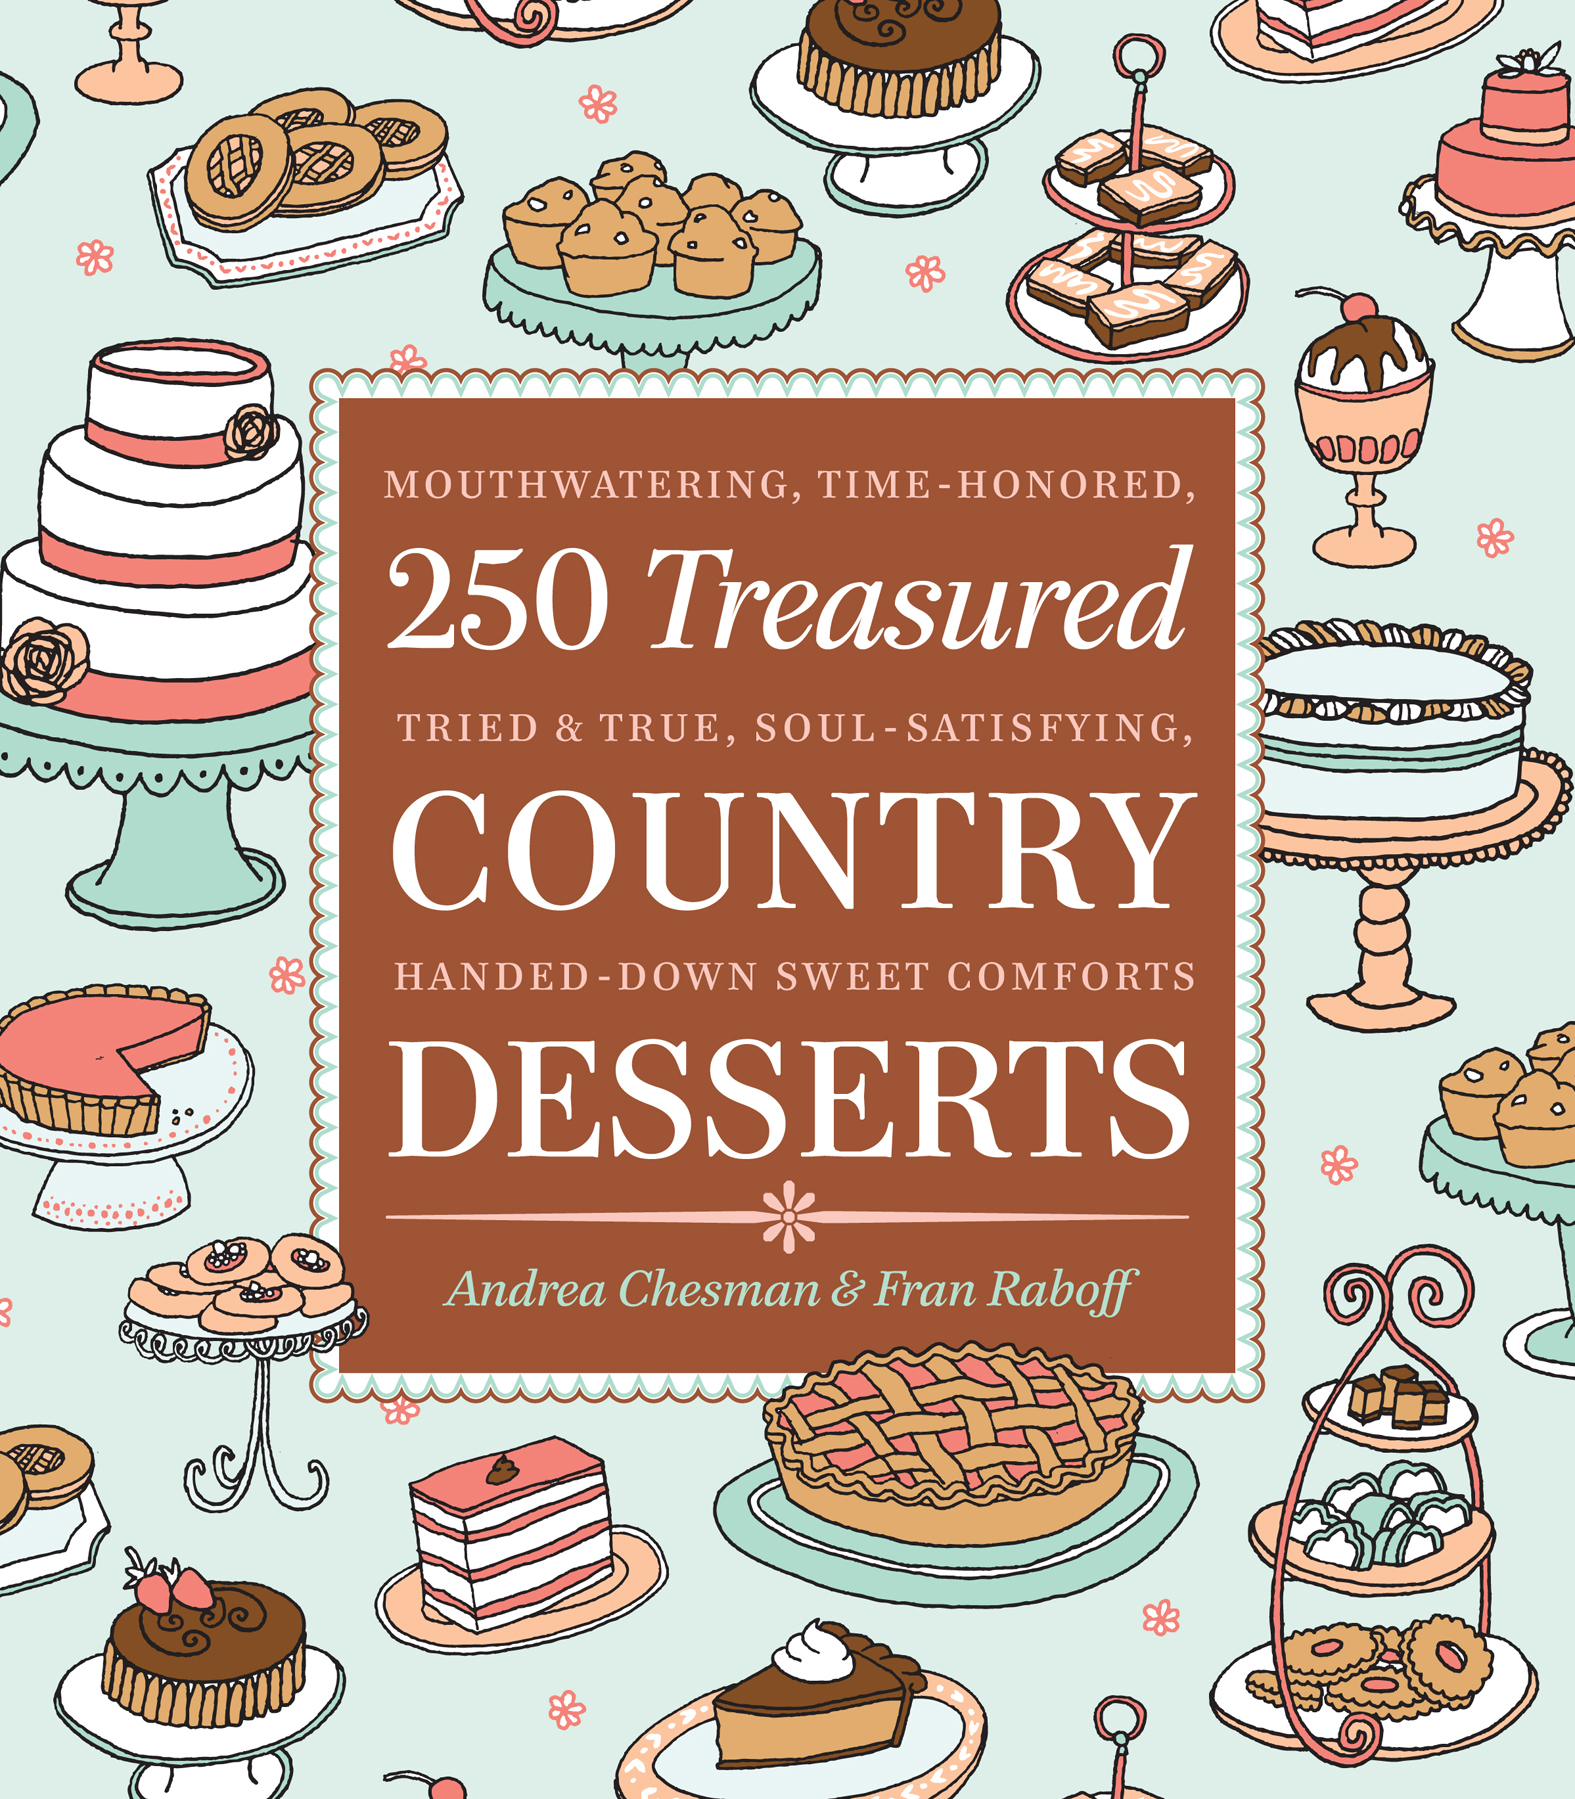 250 Treasured Country Desserts Mouthwatering, Time-honored, Tried & True, Soul-satisfying, Handed-down Sweet Comforts